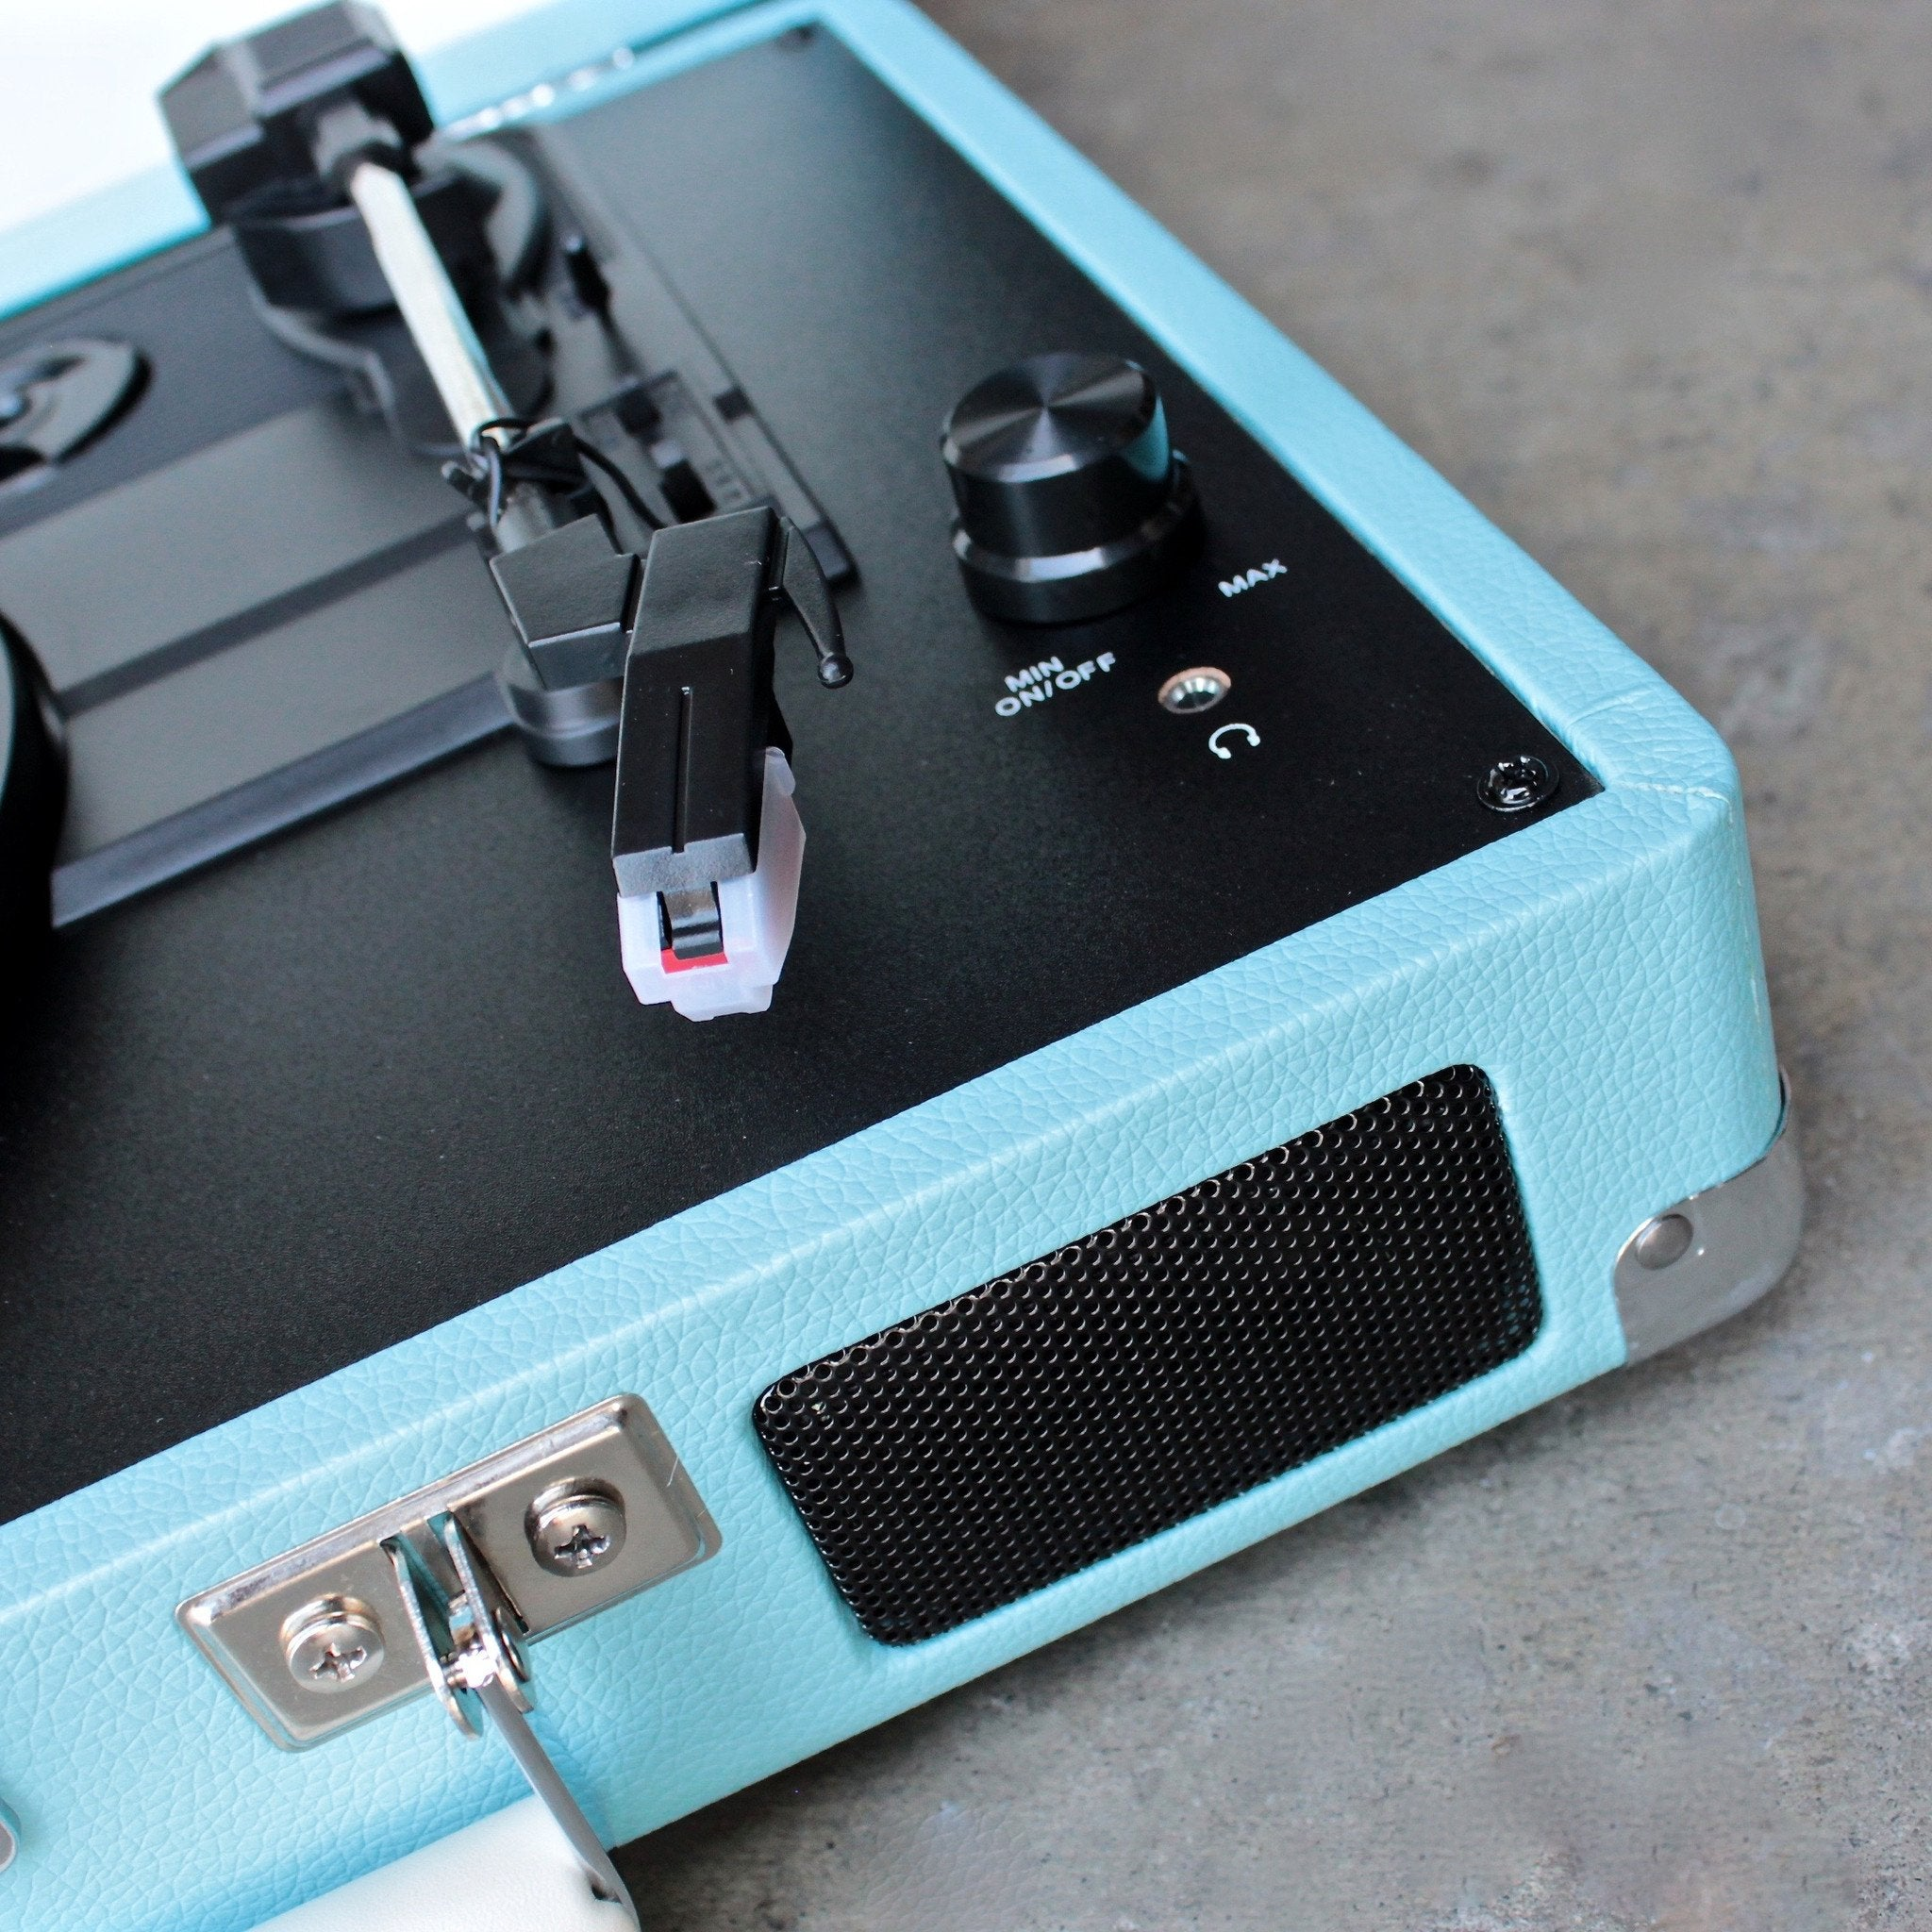 Crosley Cruiser Portable Turntable In Turquoise   Shophearts   4